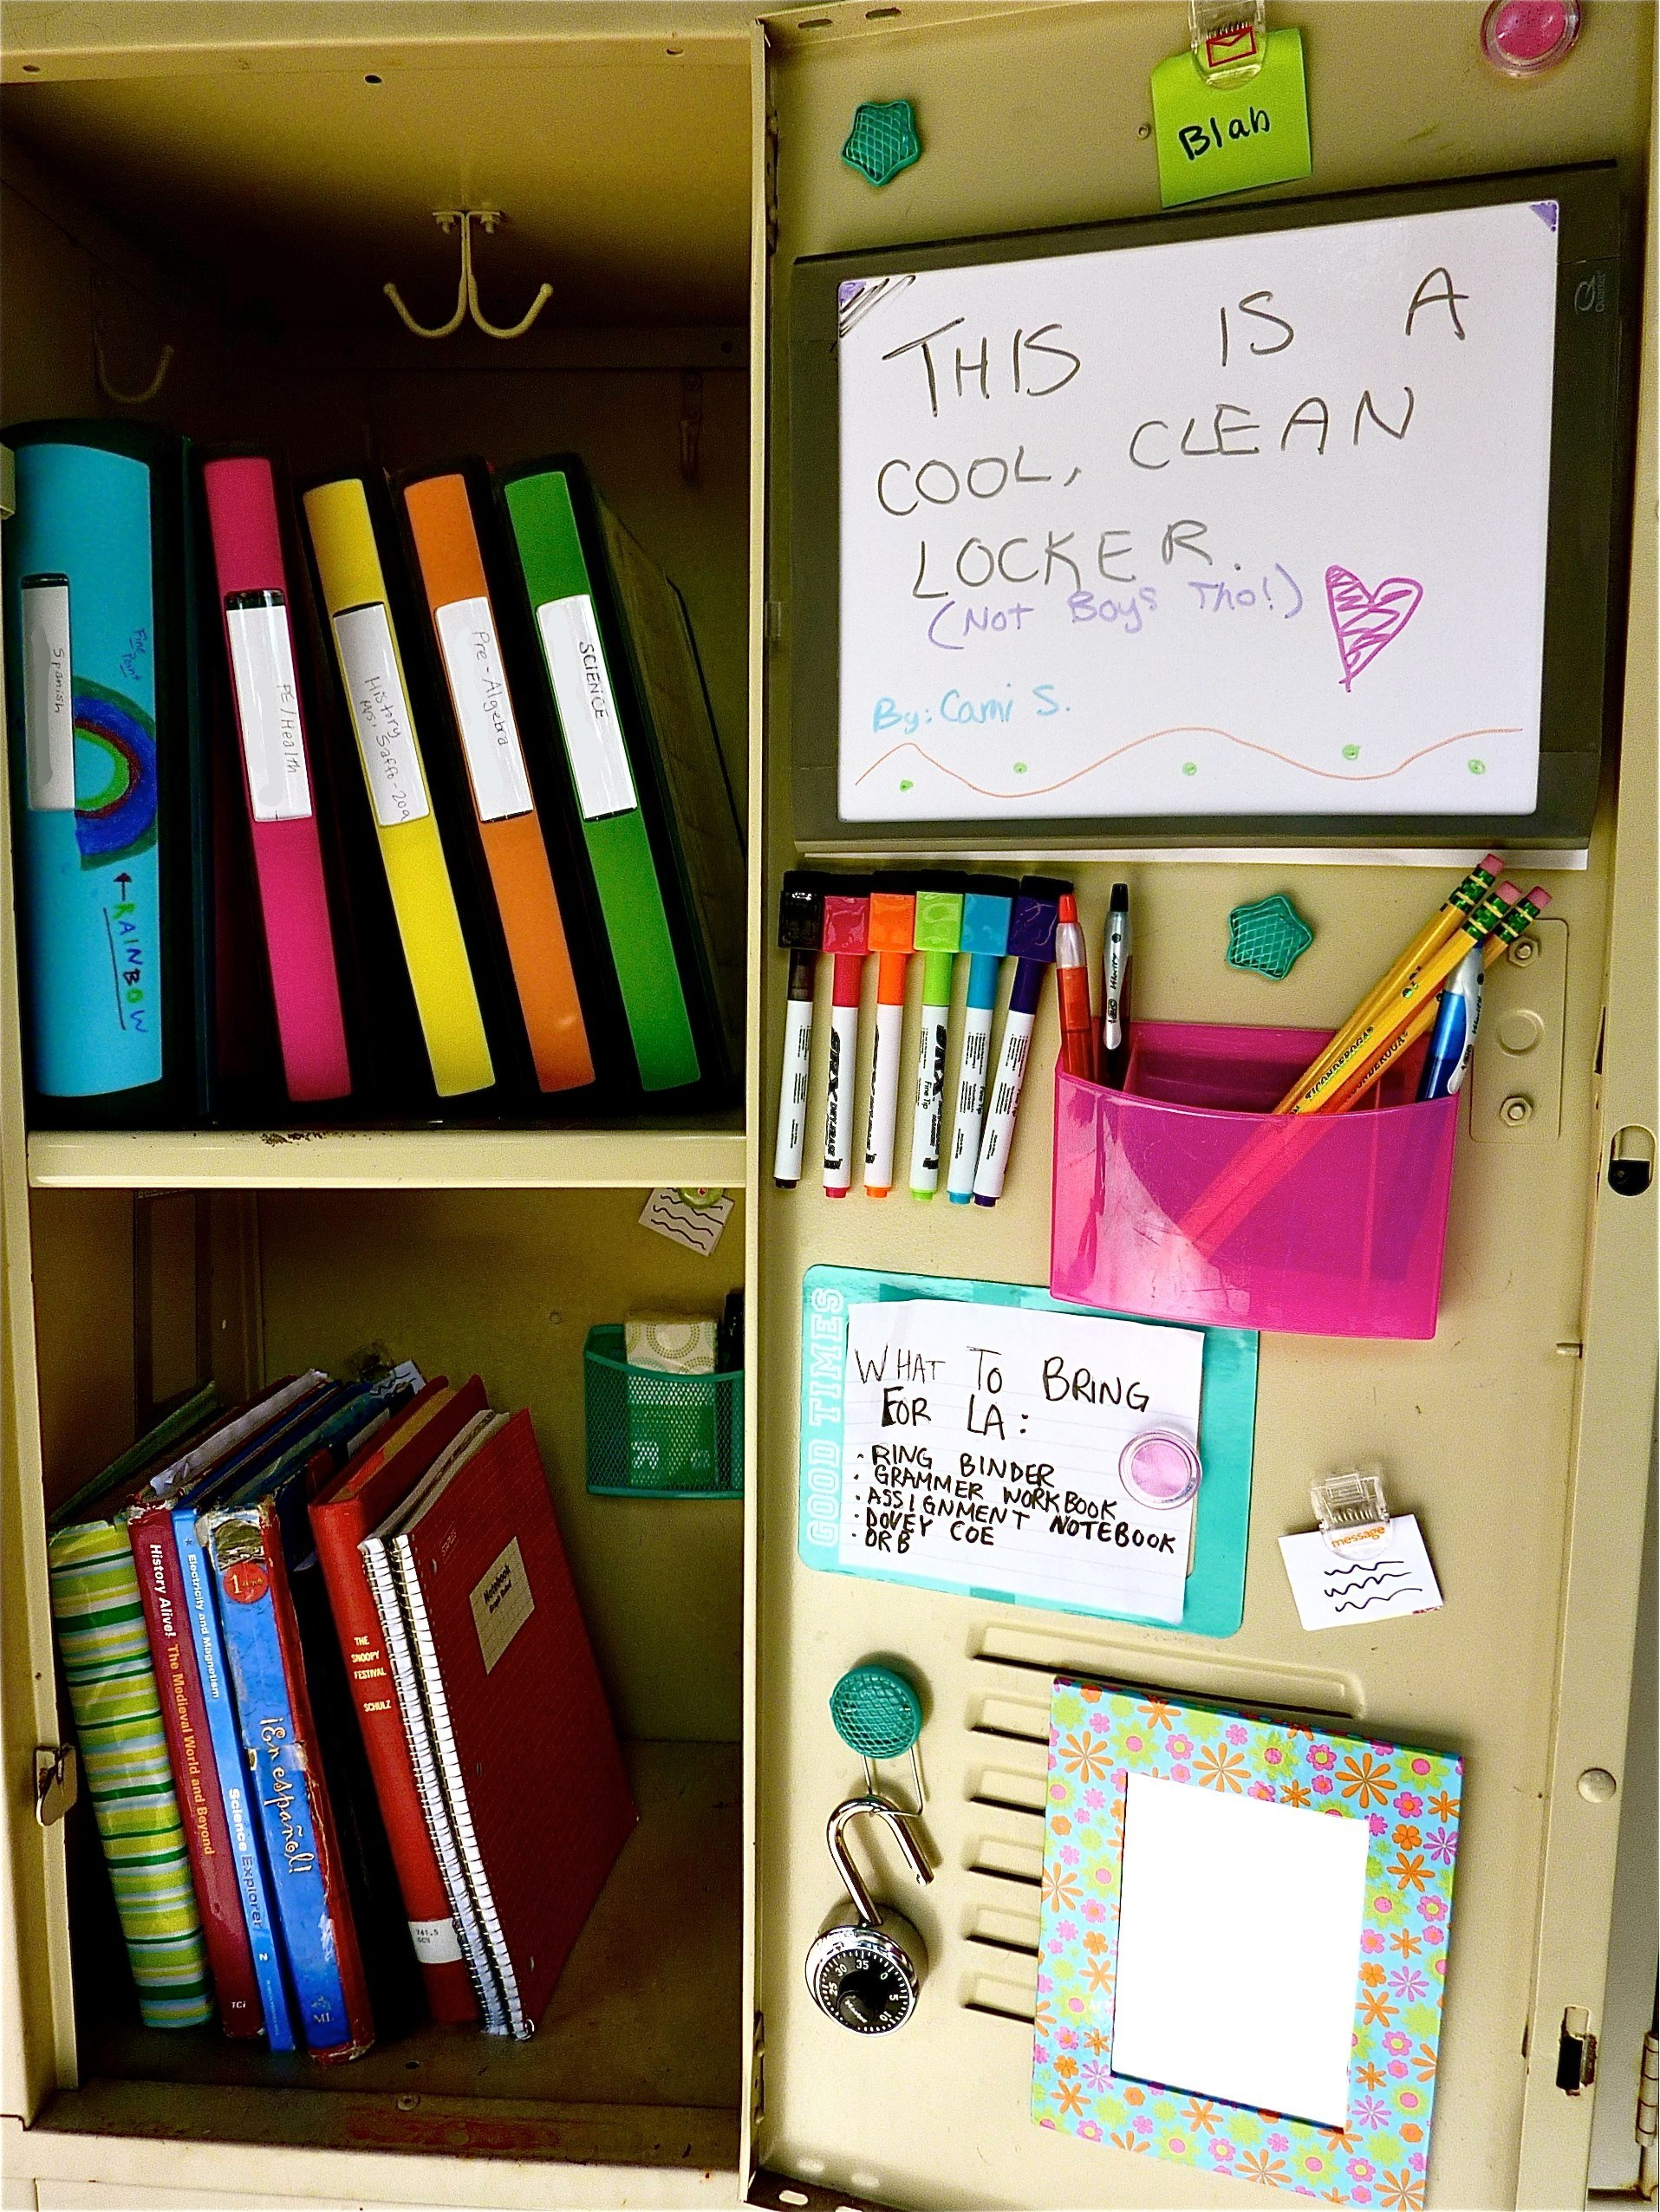 Colorful locker organizers and school supplies